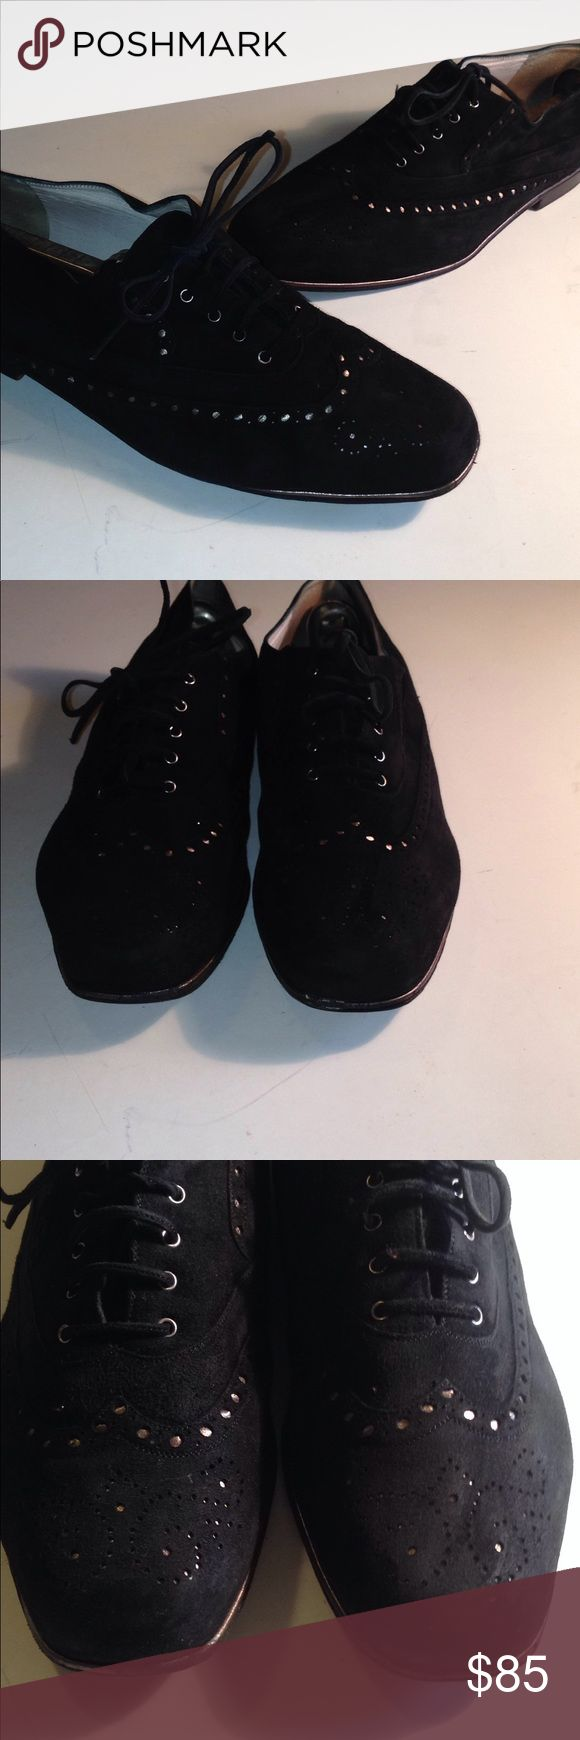 Maud Frizon loafers Jet black suede tie up flats. Perforated vamp design with metallic gold underlay. Leather lining & soles. Serial numbers on soles . In good condition comfy & quality MAUD FRIZON Shoes Flats & Loafers